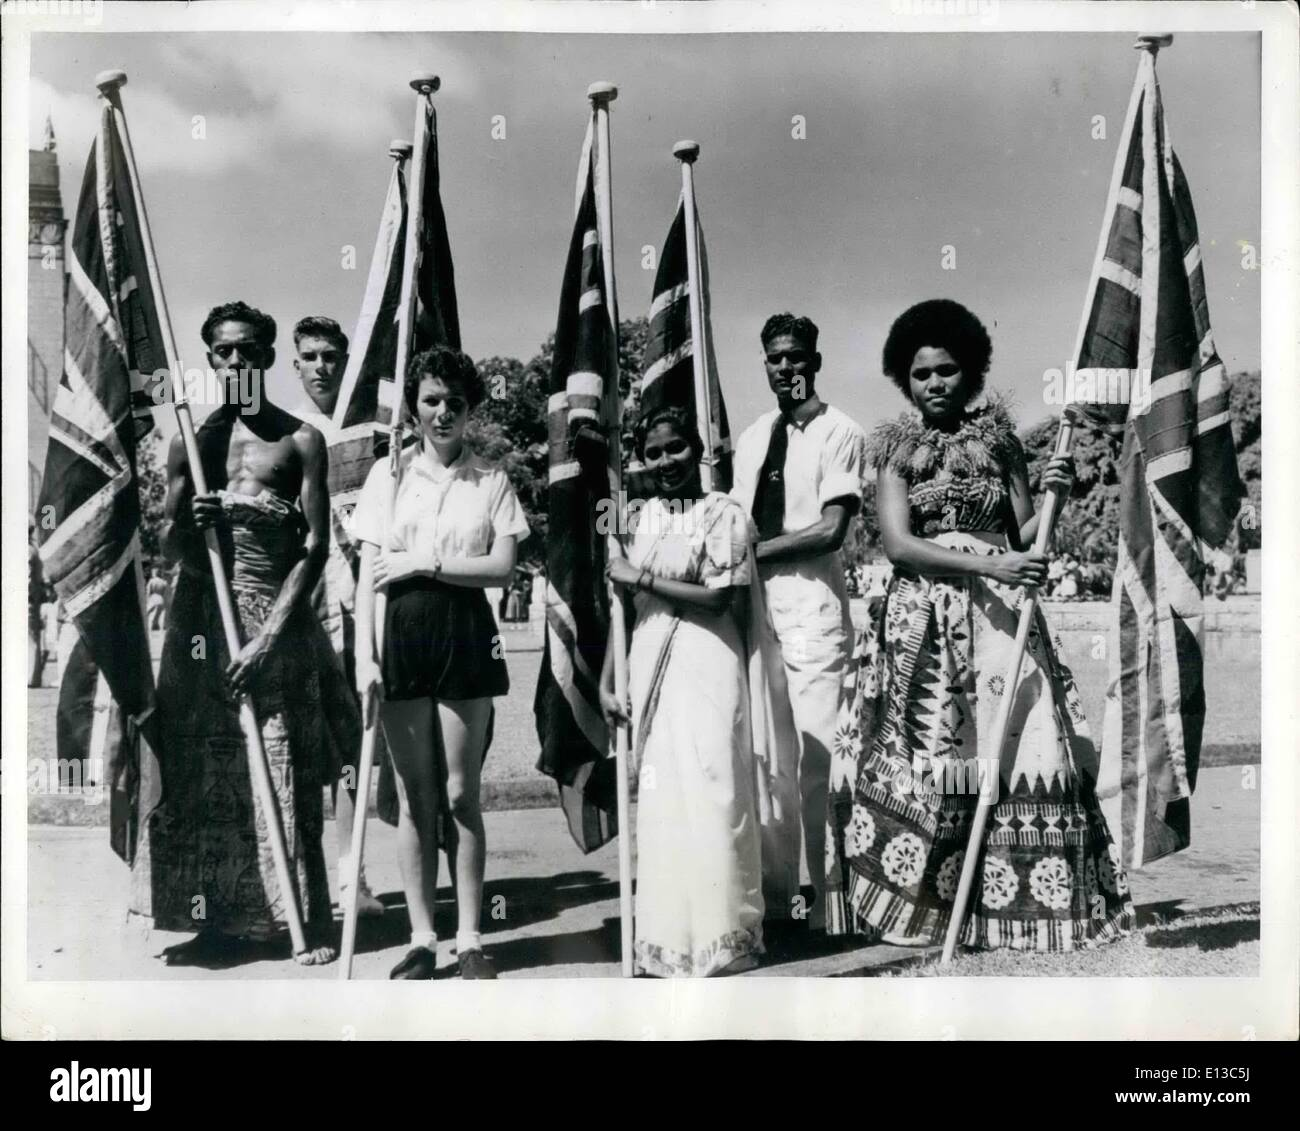 Feb. 29, 2012 - Fiji celebrates seventy five years of British rule.: The 75th anniversary of Fiji's cession to Britain was celebrated on October 10th. 1949, and was marked by military parades, a sports meeting to select athletes to compete in the Empire Games to be held at Auckland, N.Z. in Feb. 1950, and an exhibition to show the remarkable economic and social progress of the colony during the seventy-five years under British rule. - Stock Image